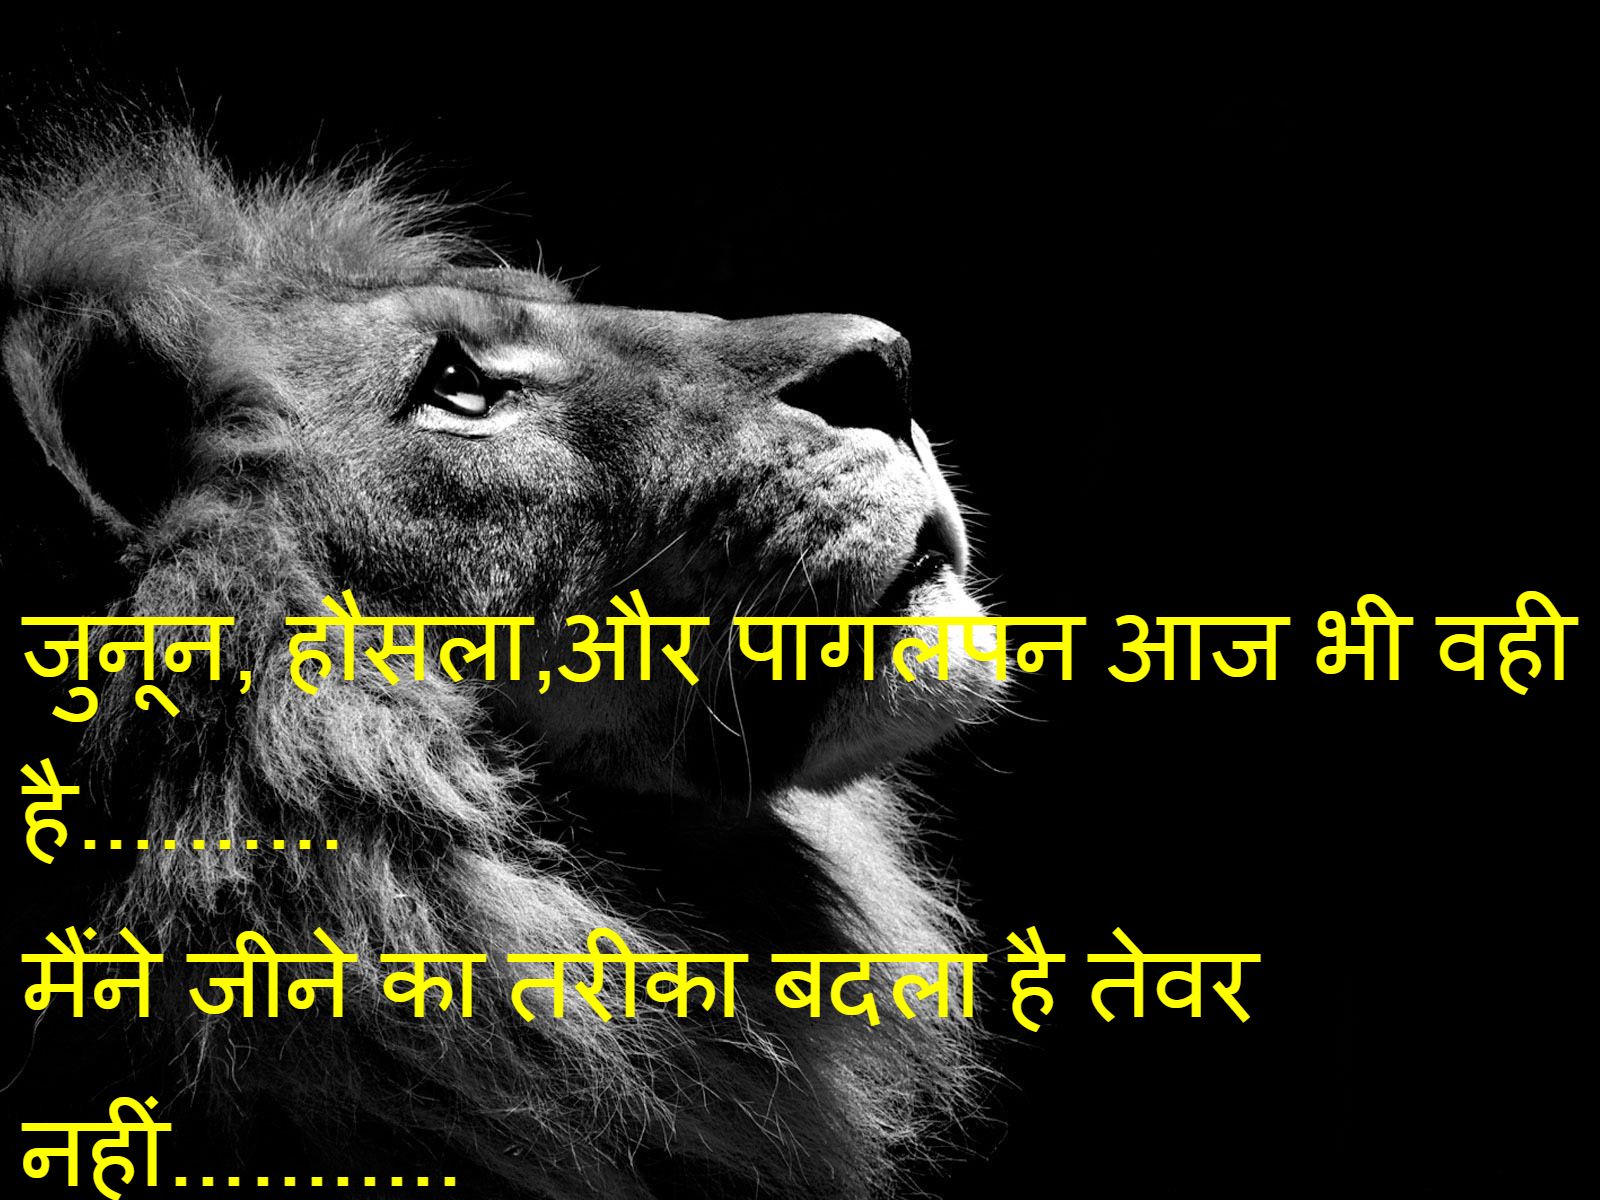 600x400 Quotes Shayari Life Hindi Picturesms Www Picturesboss Com